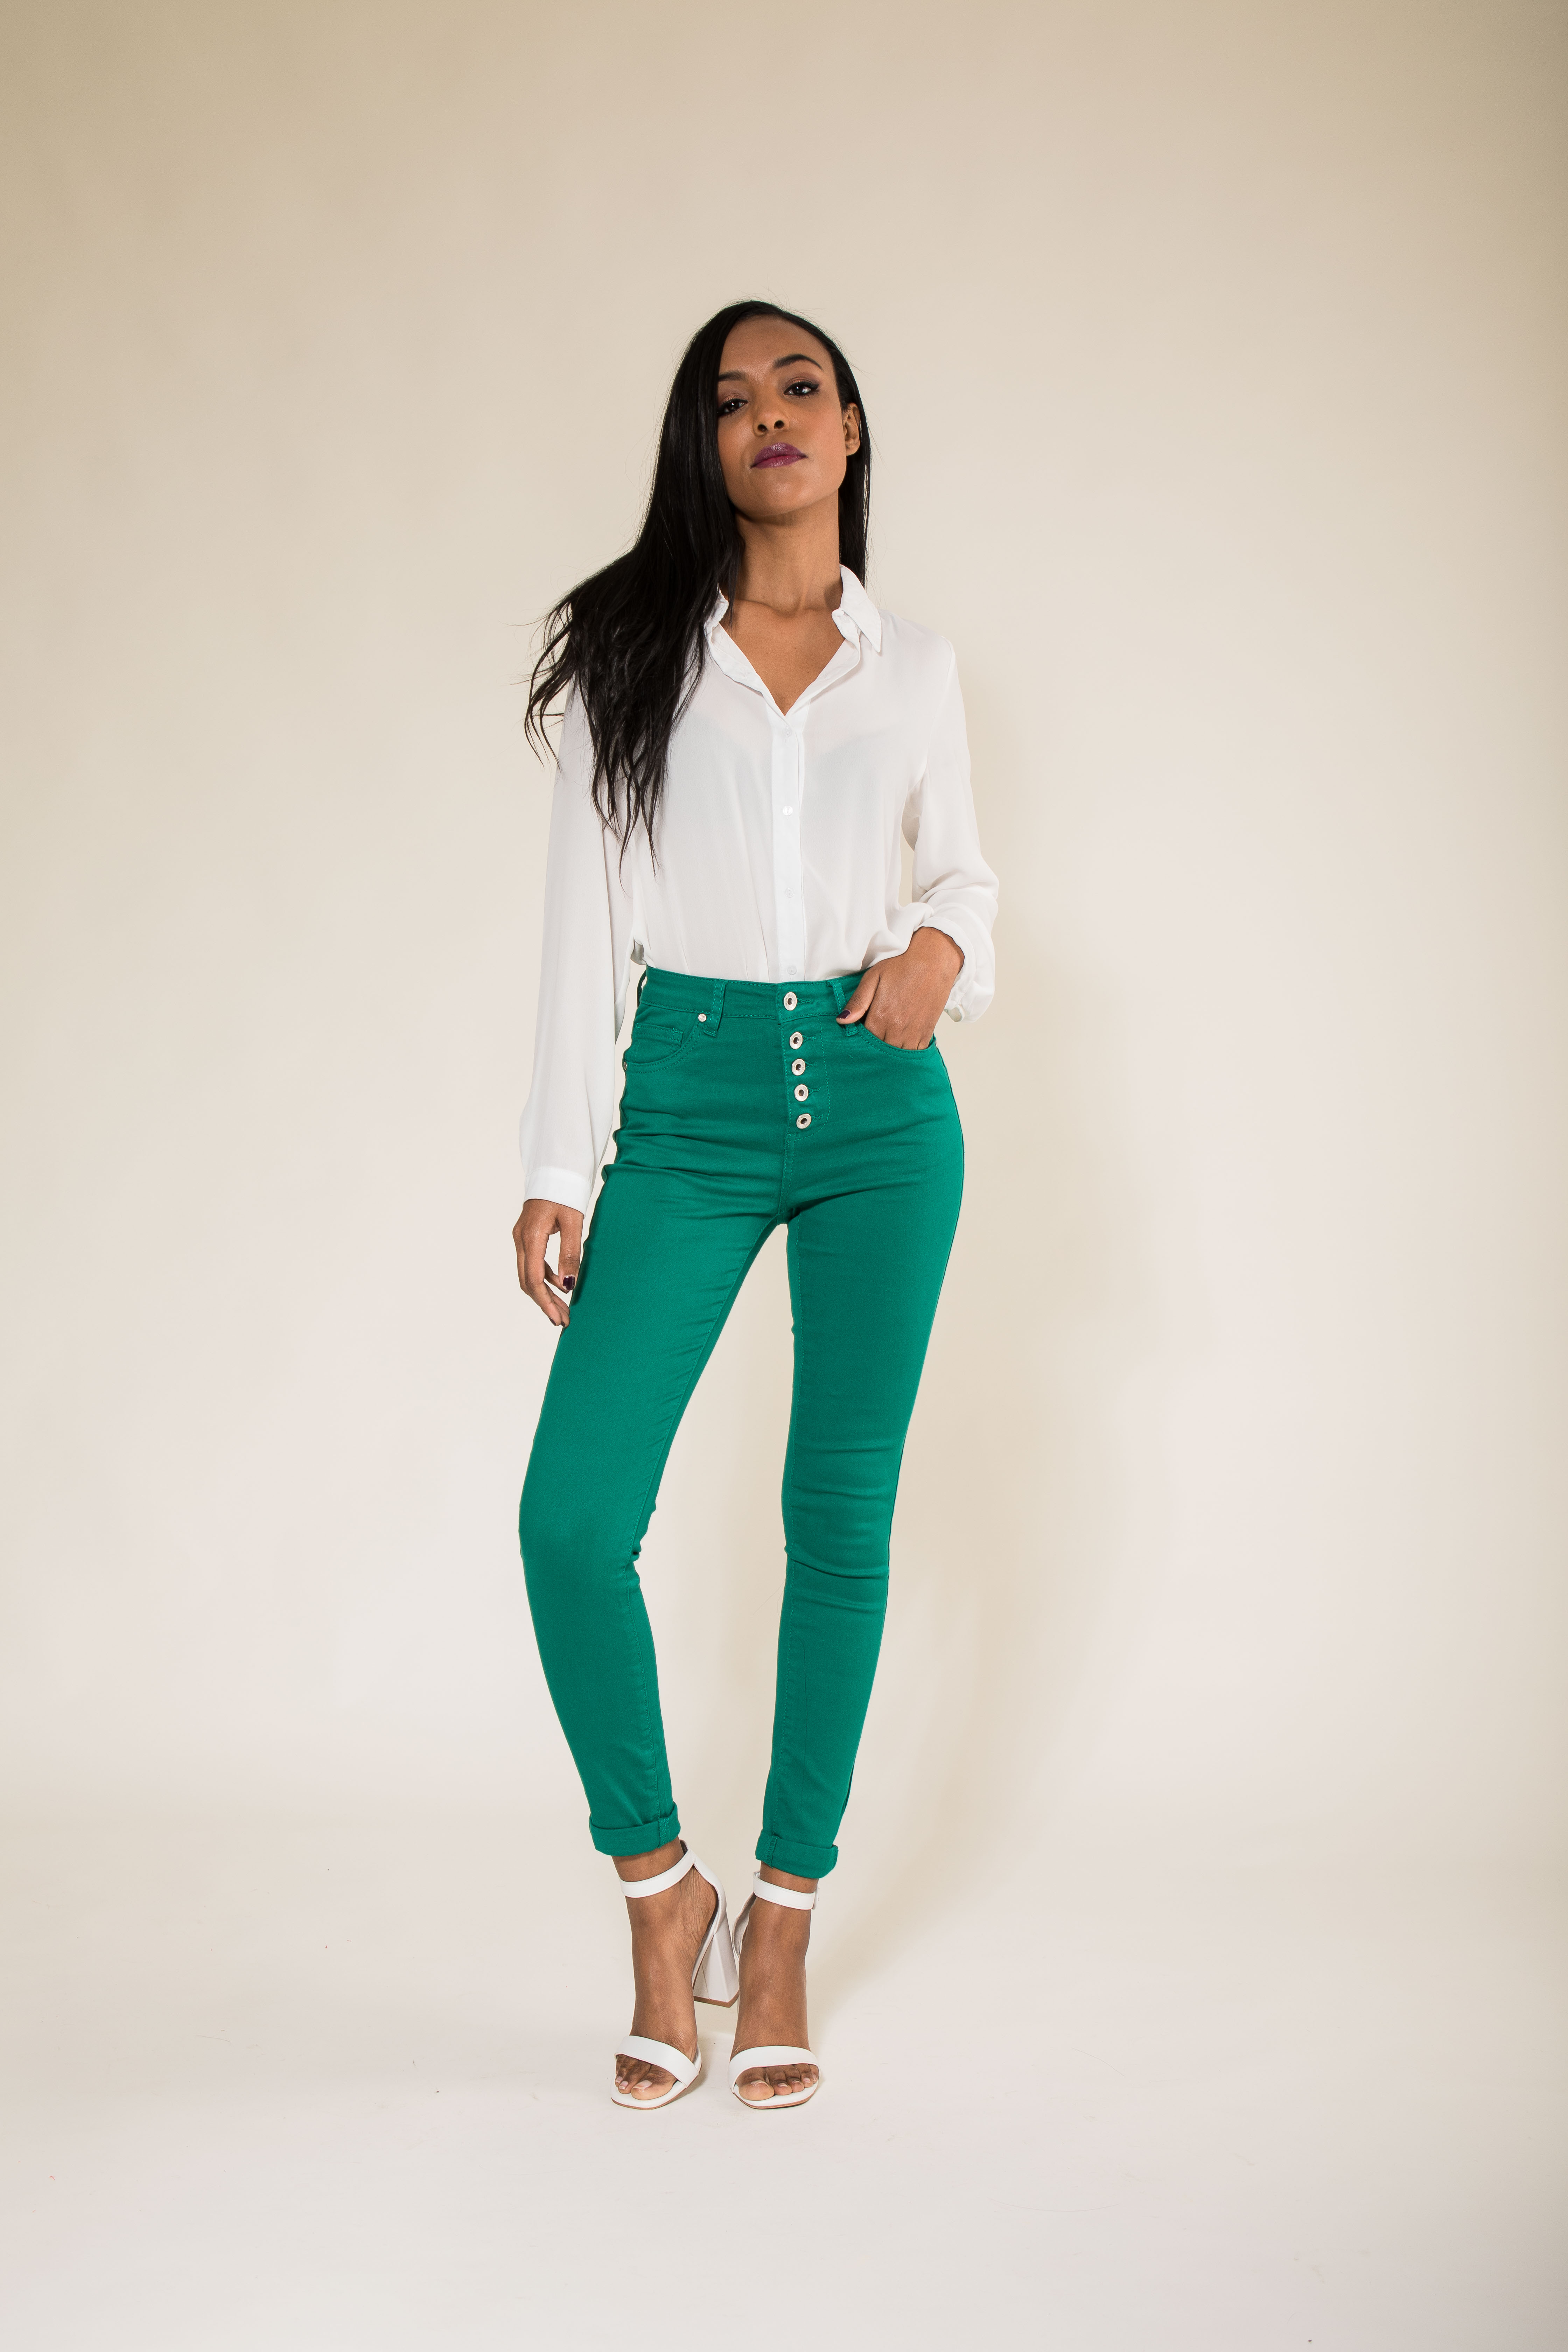 Women-High-Waisted-Jeans-Ladies-Coloured-Stretchy-jeggings-Pants-Size-6-14 thumbnail 21